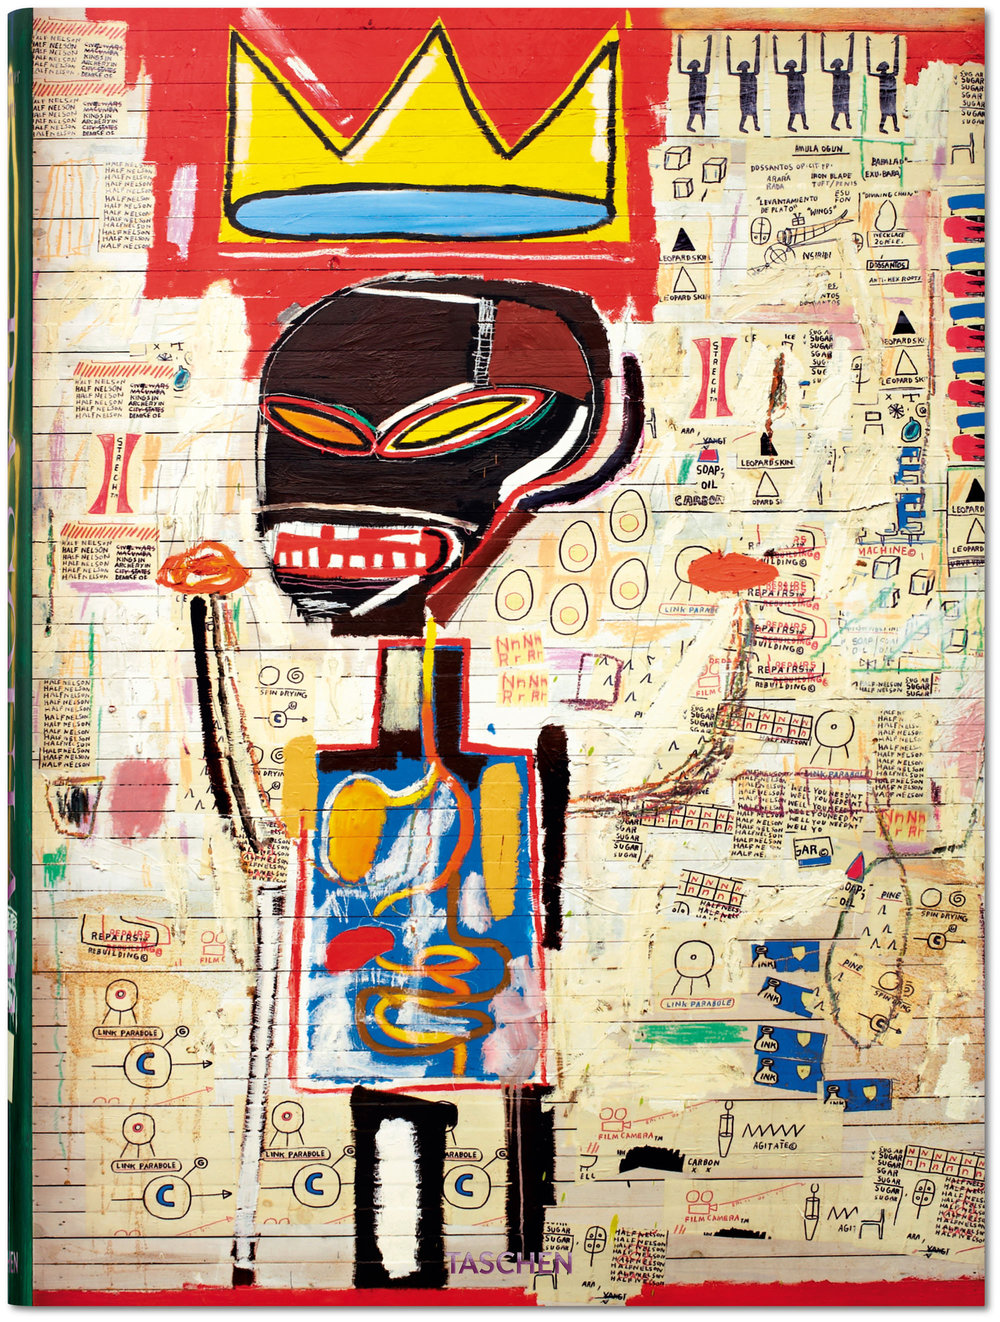 ean-Michel Basquiat, Hans Werner Holzwarth, Eleanor Nairne Hardcover, 29 x 39.5 cm, 500 pages US$ 200 | £ 150 | € 150, All images courtesy of TASCHEN